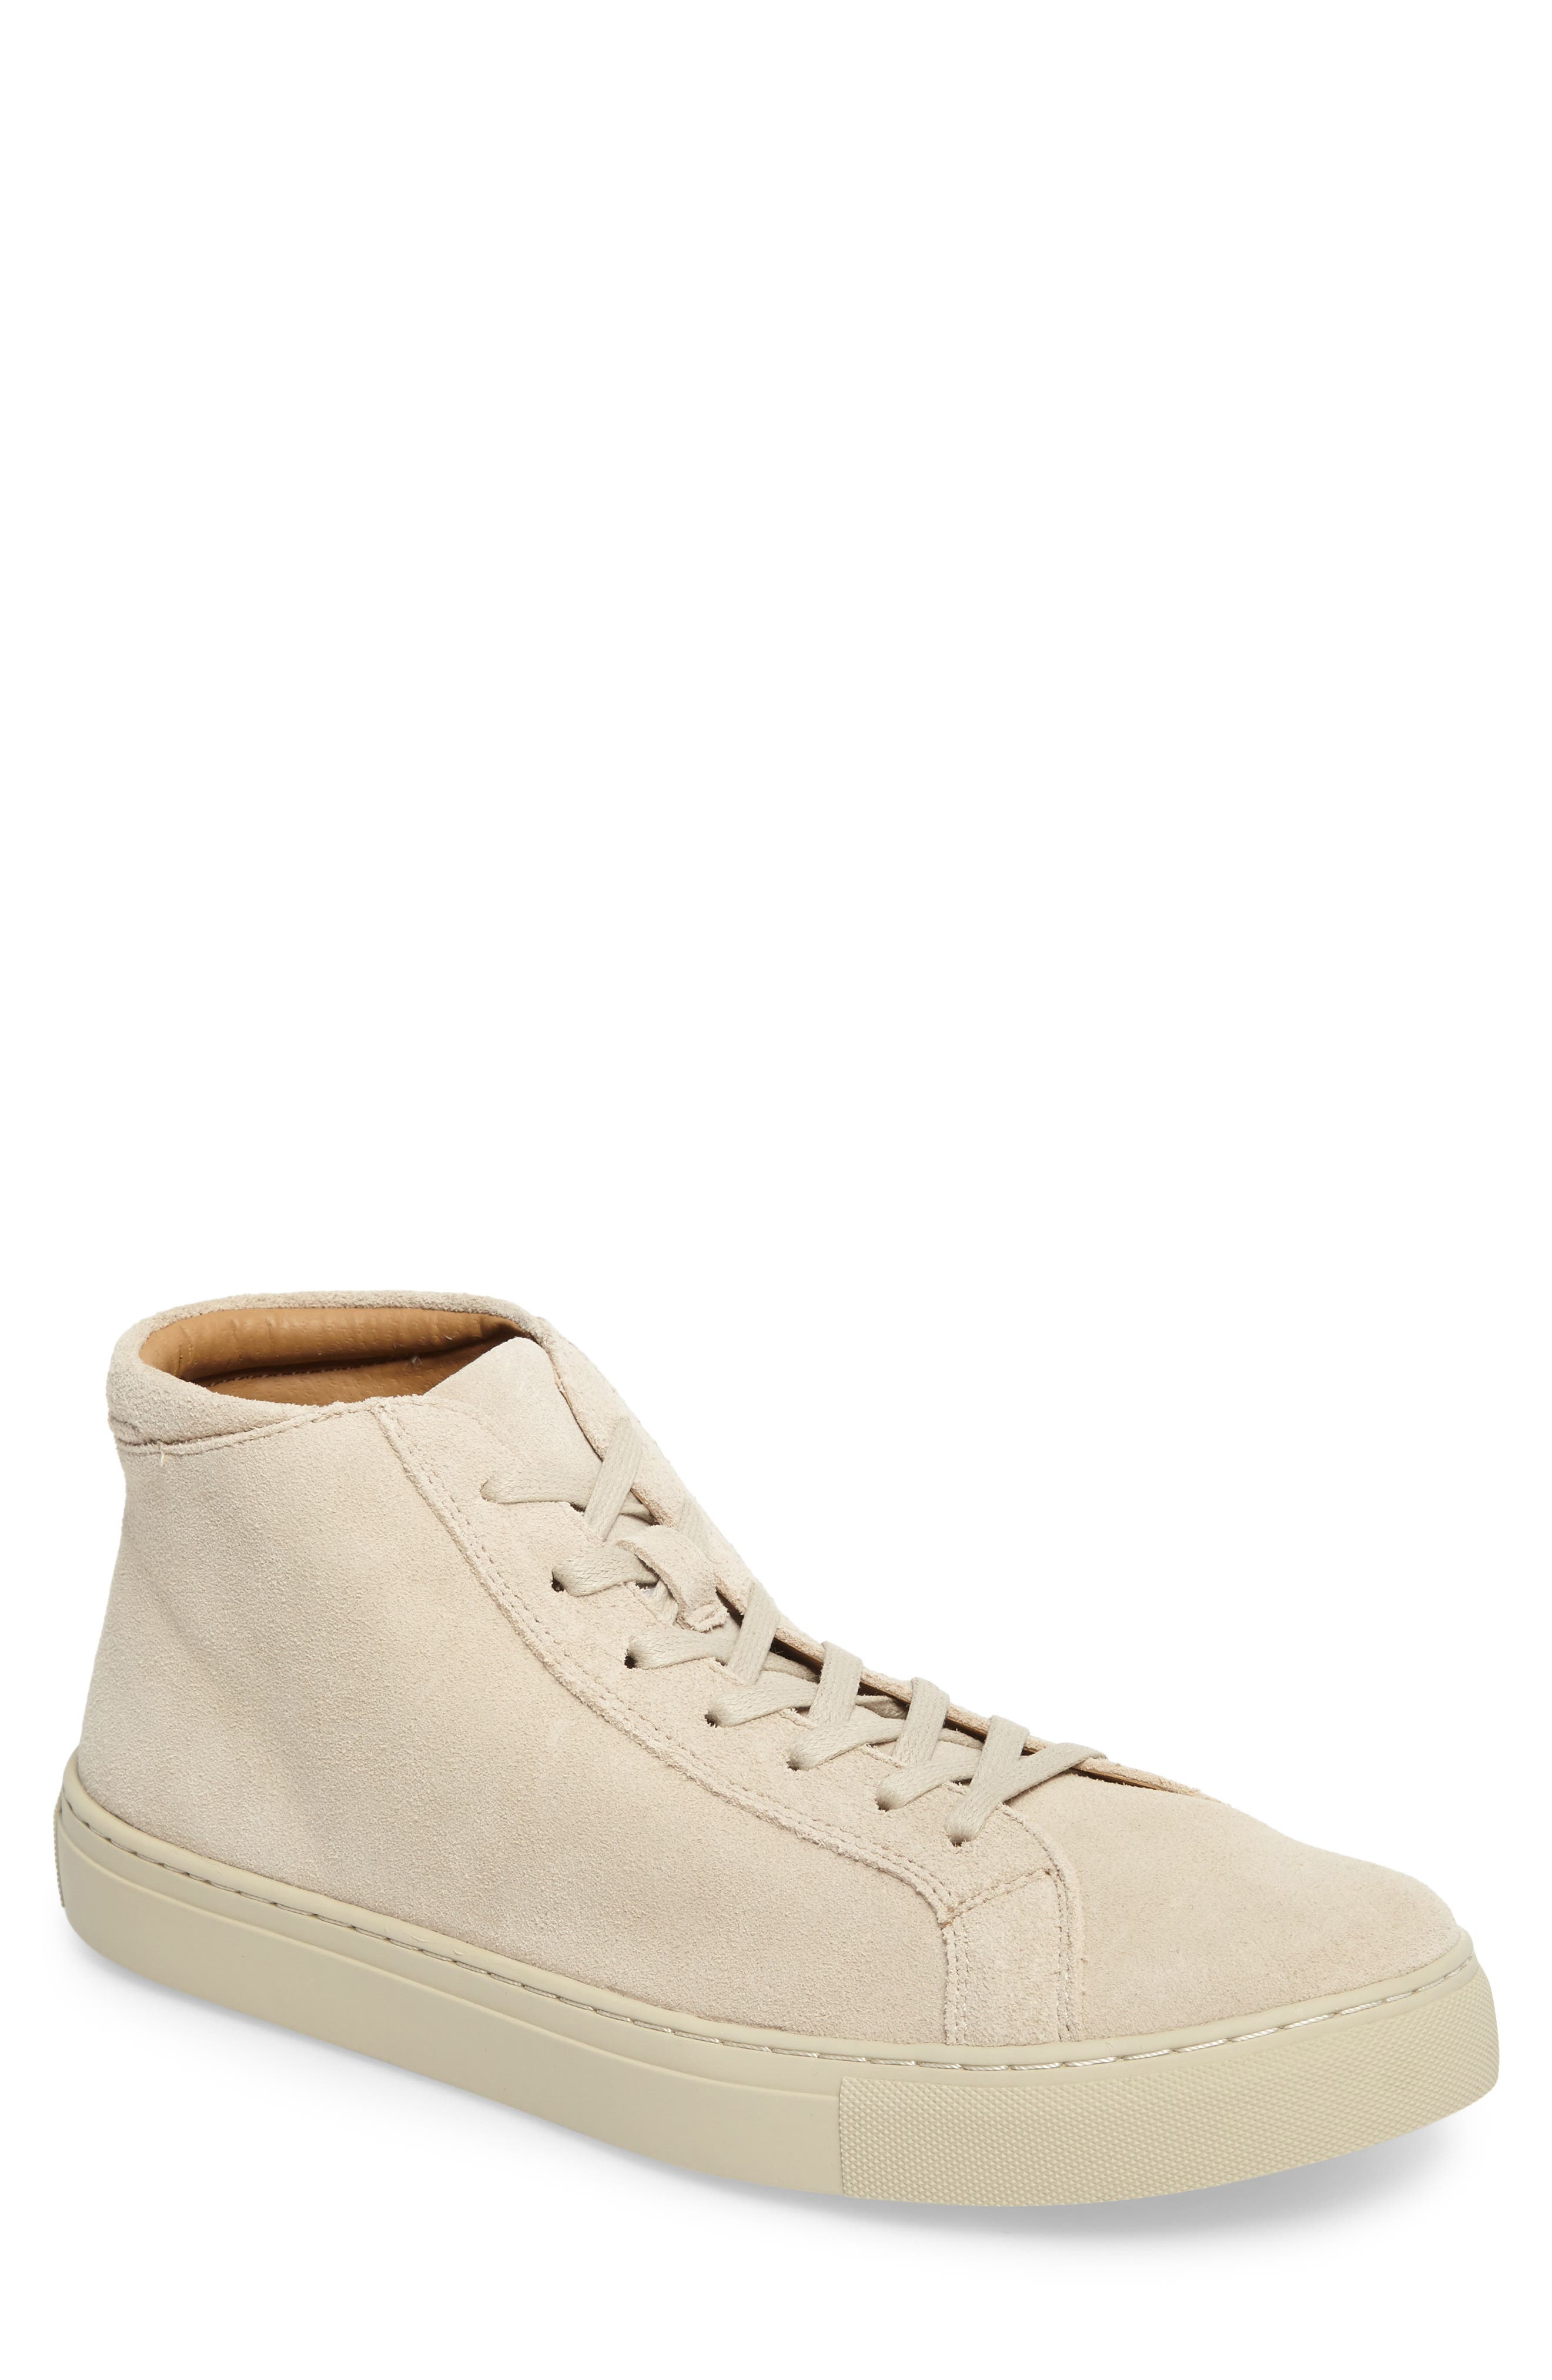 Kenneth Cole Reaction Mid Sneaker,                         Main,                         color, 292